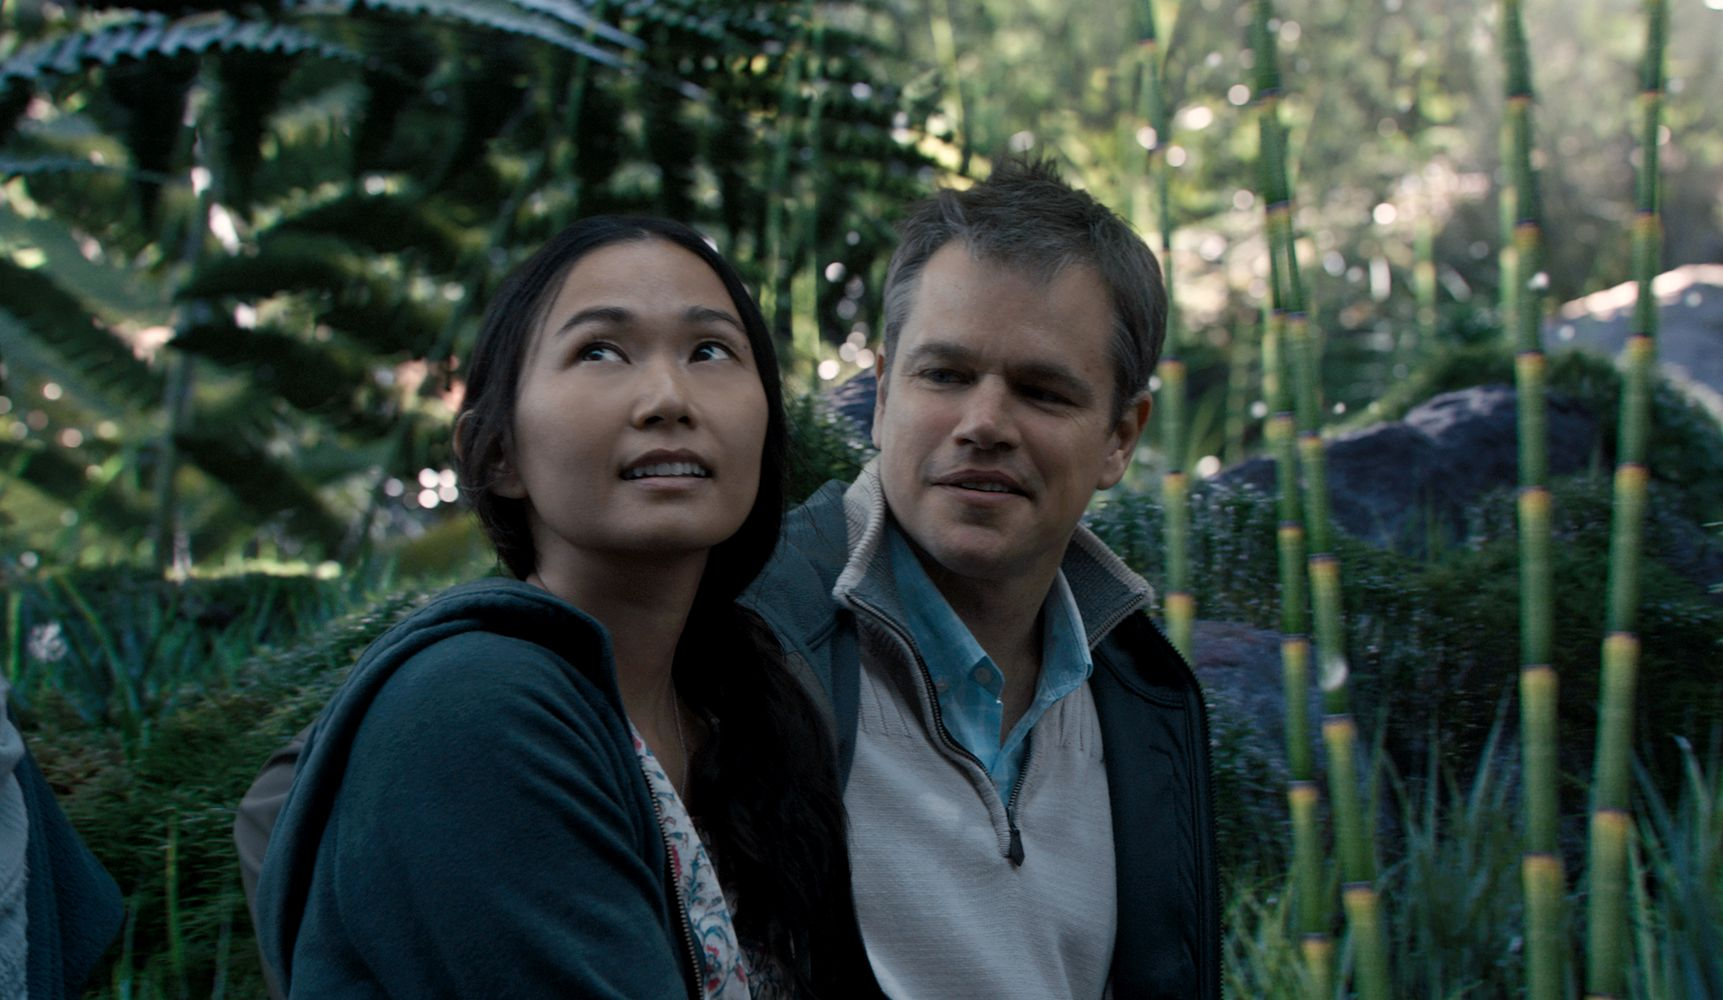 Matt Damon plays Paul Safranek and Hong Chau plays Ngoc Lan Tran in Downsizing from Paramount Pictures.